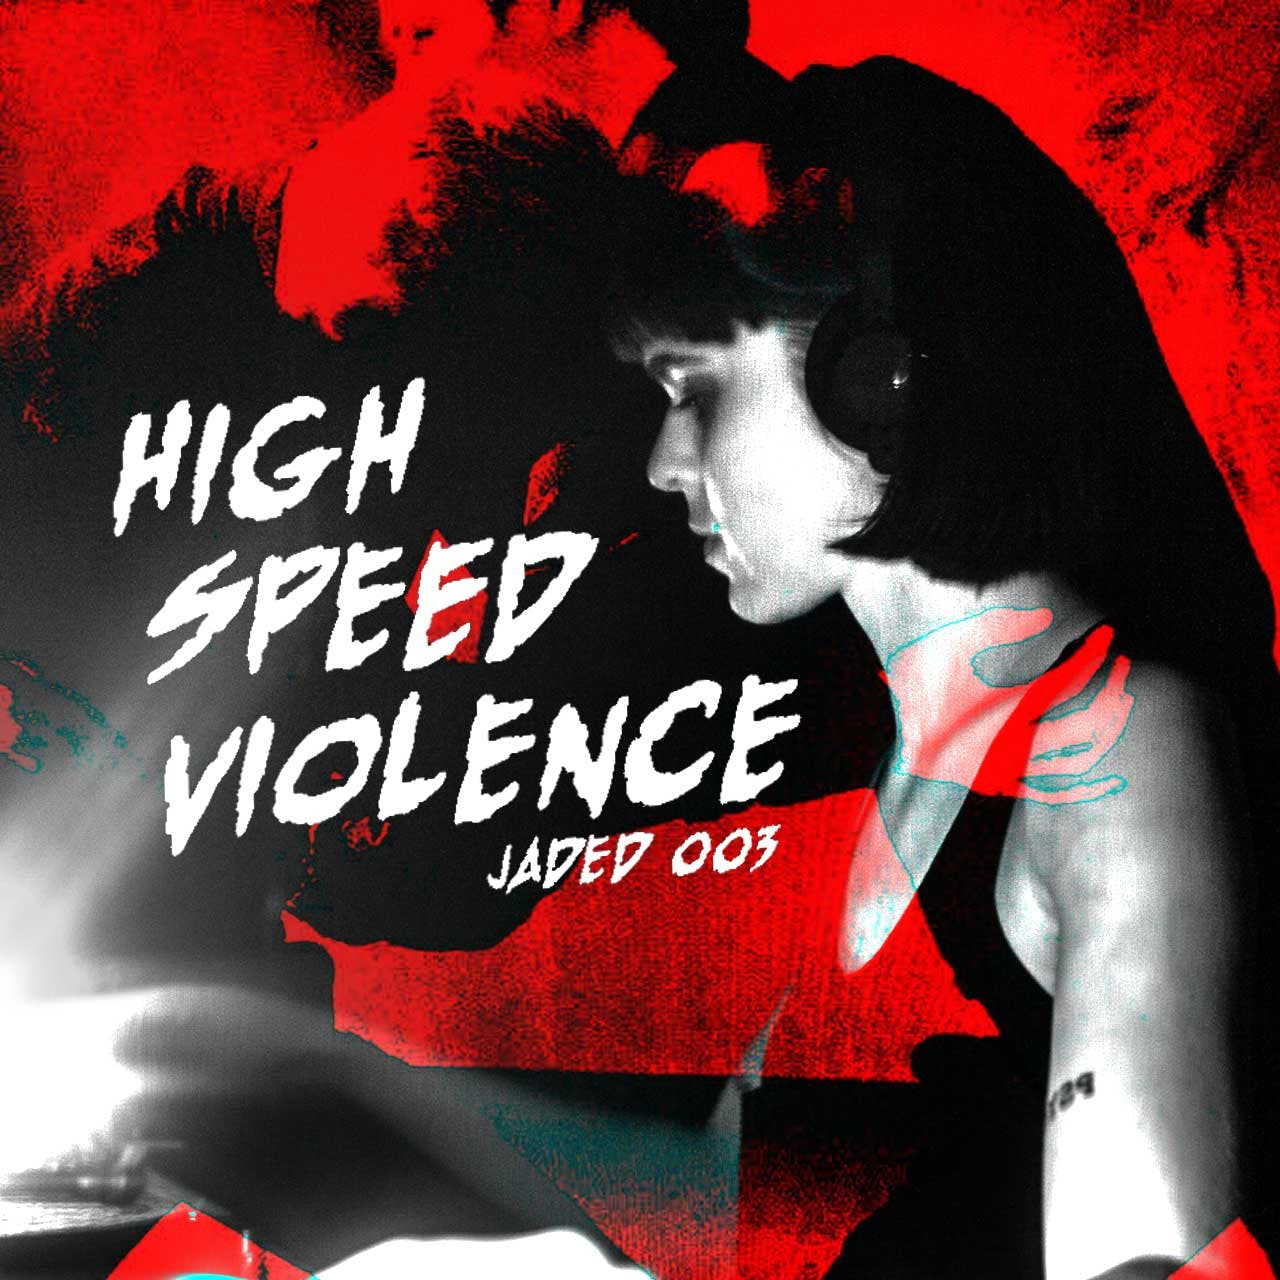 JADED: DISRUPTORS 03 – High Speed Violence.